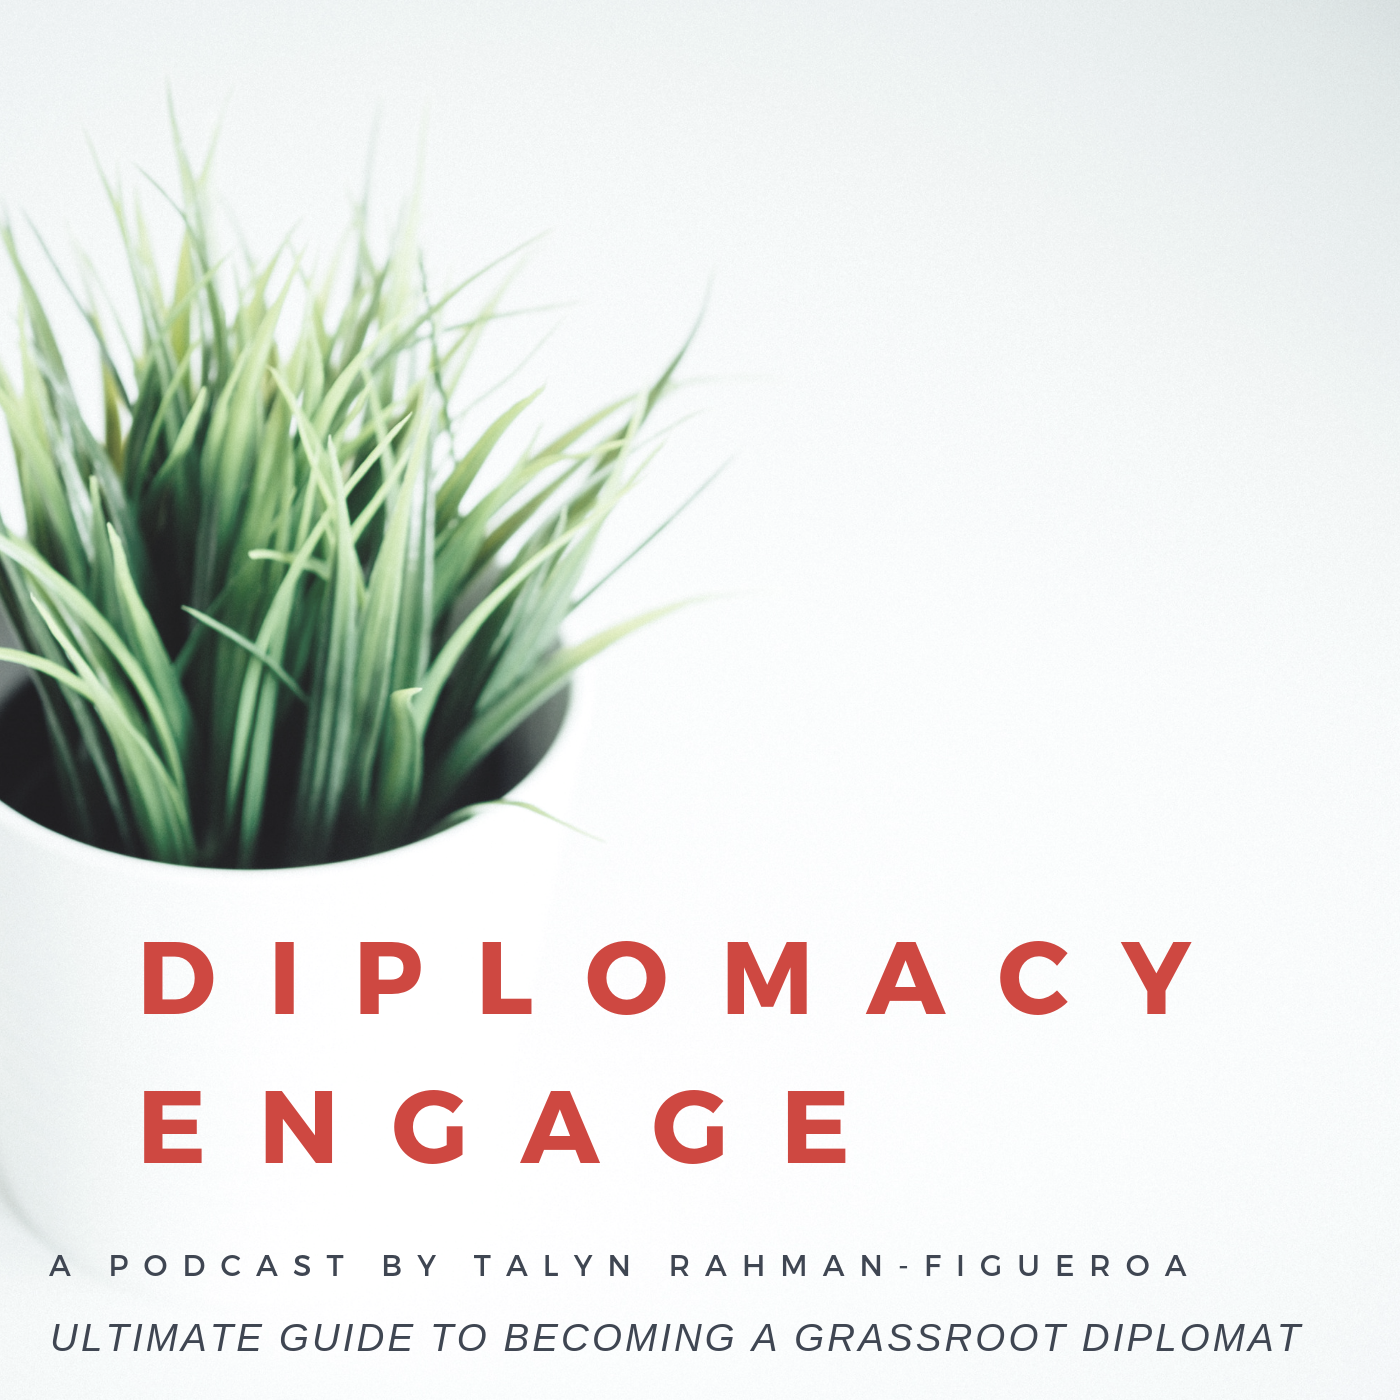 Diplomacy Engage_MainCover.png